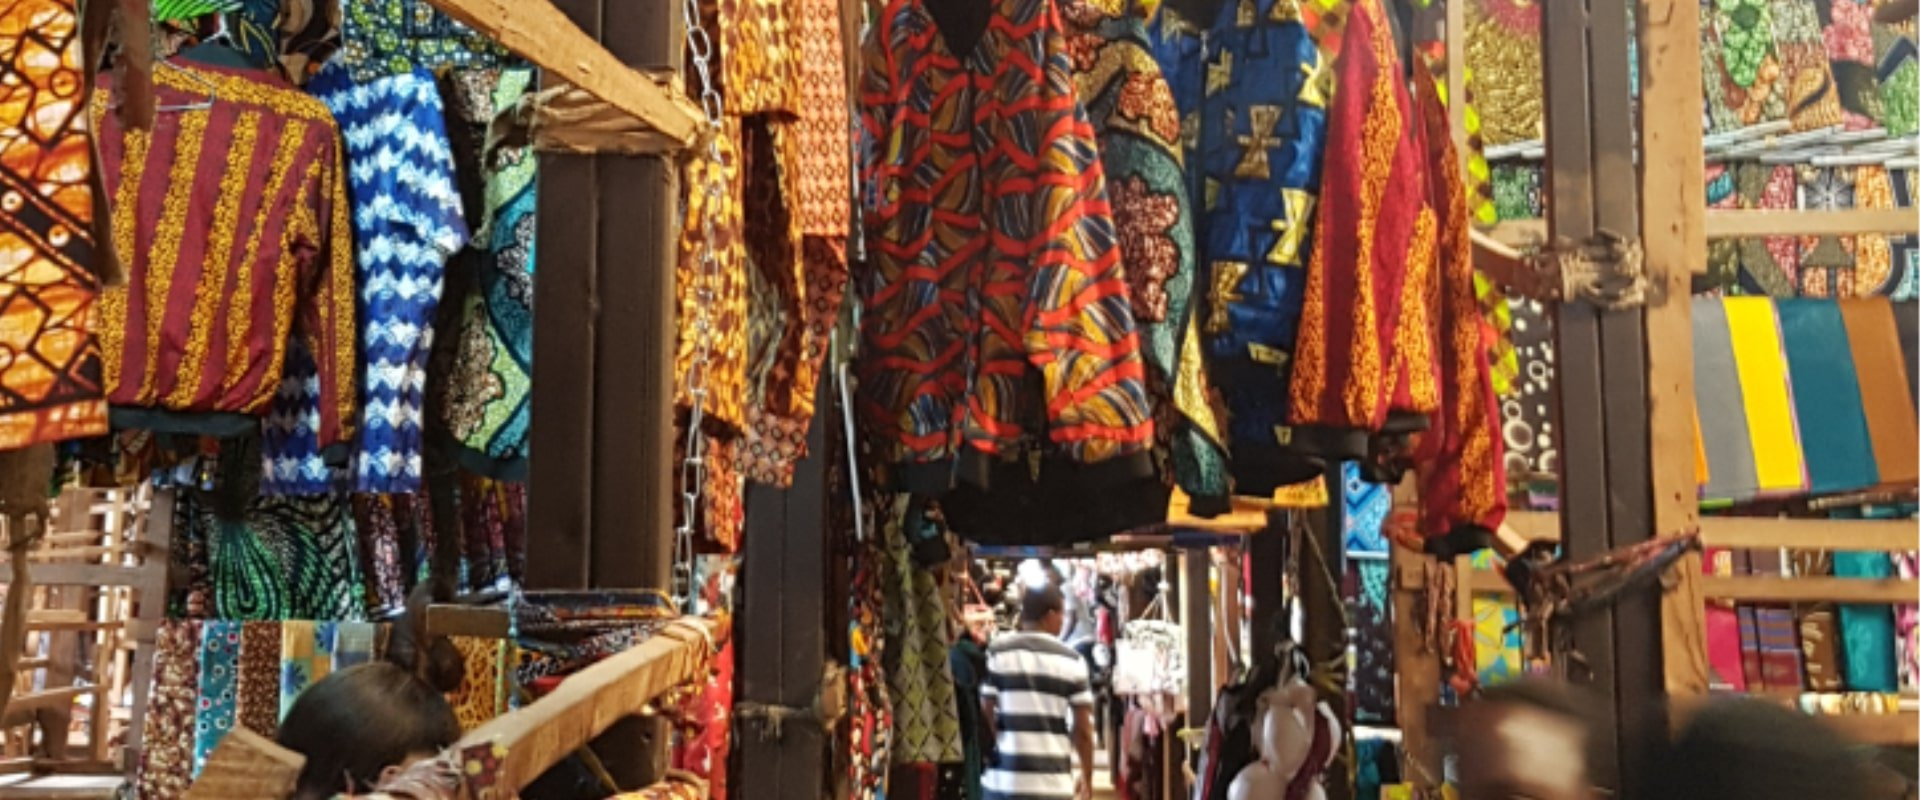 Explore Kigali and its markets